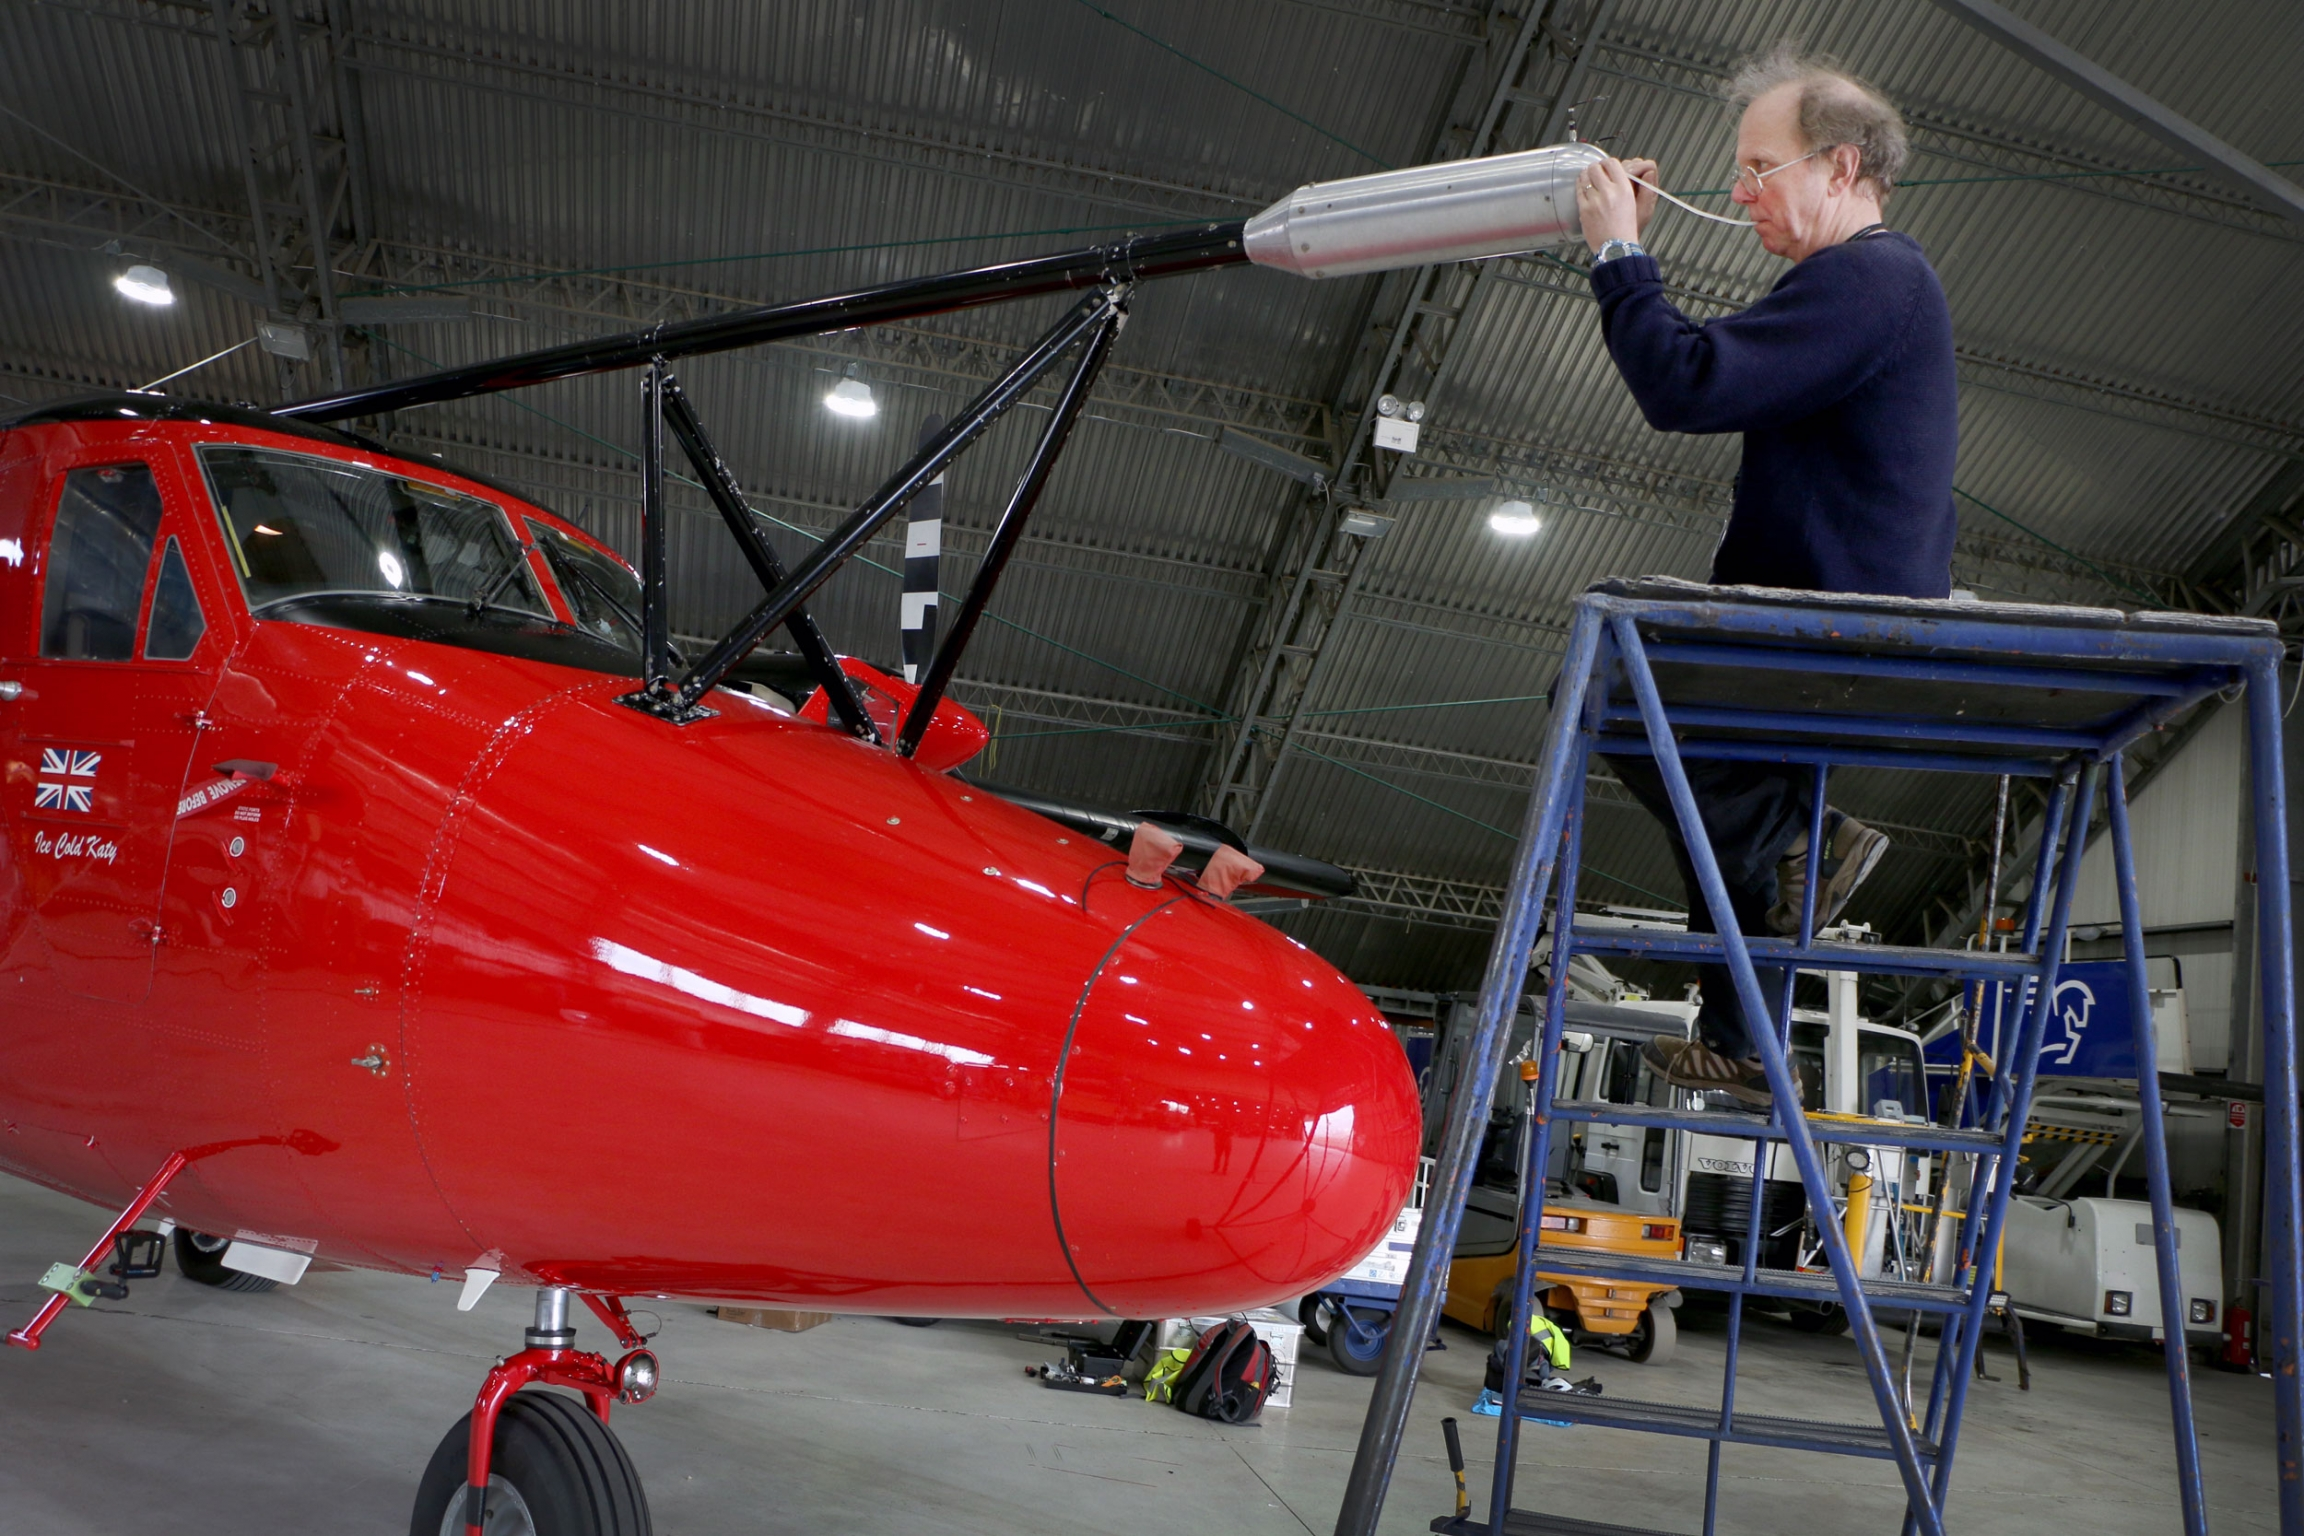 A man on a ladder works on a cherry red science airplane